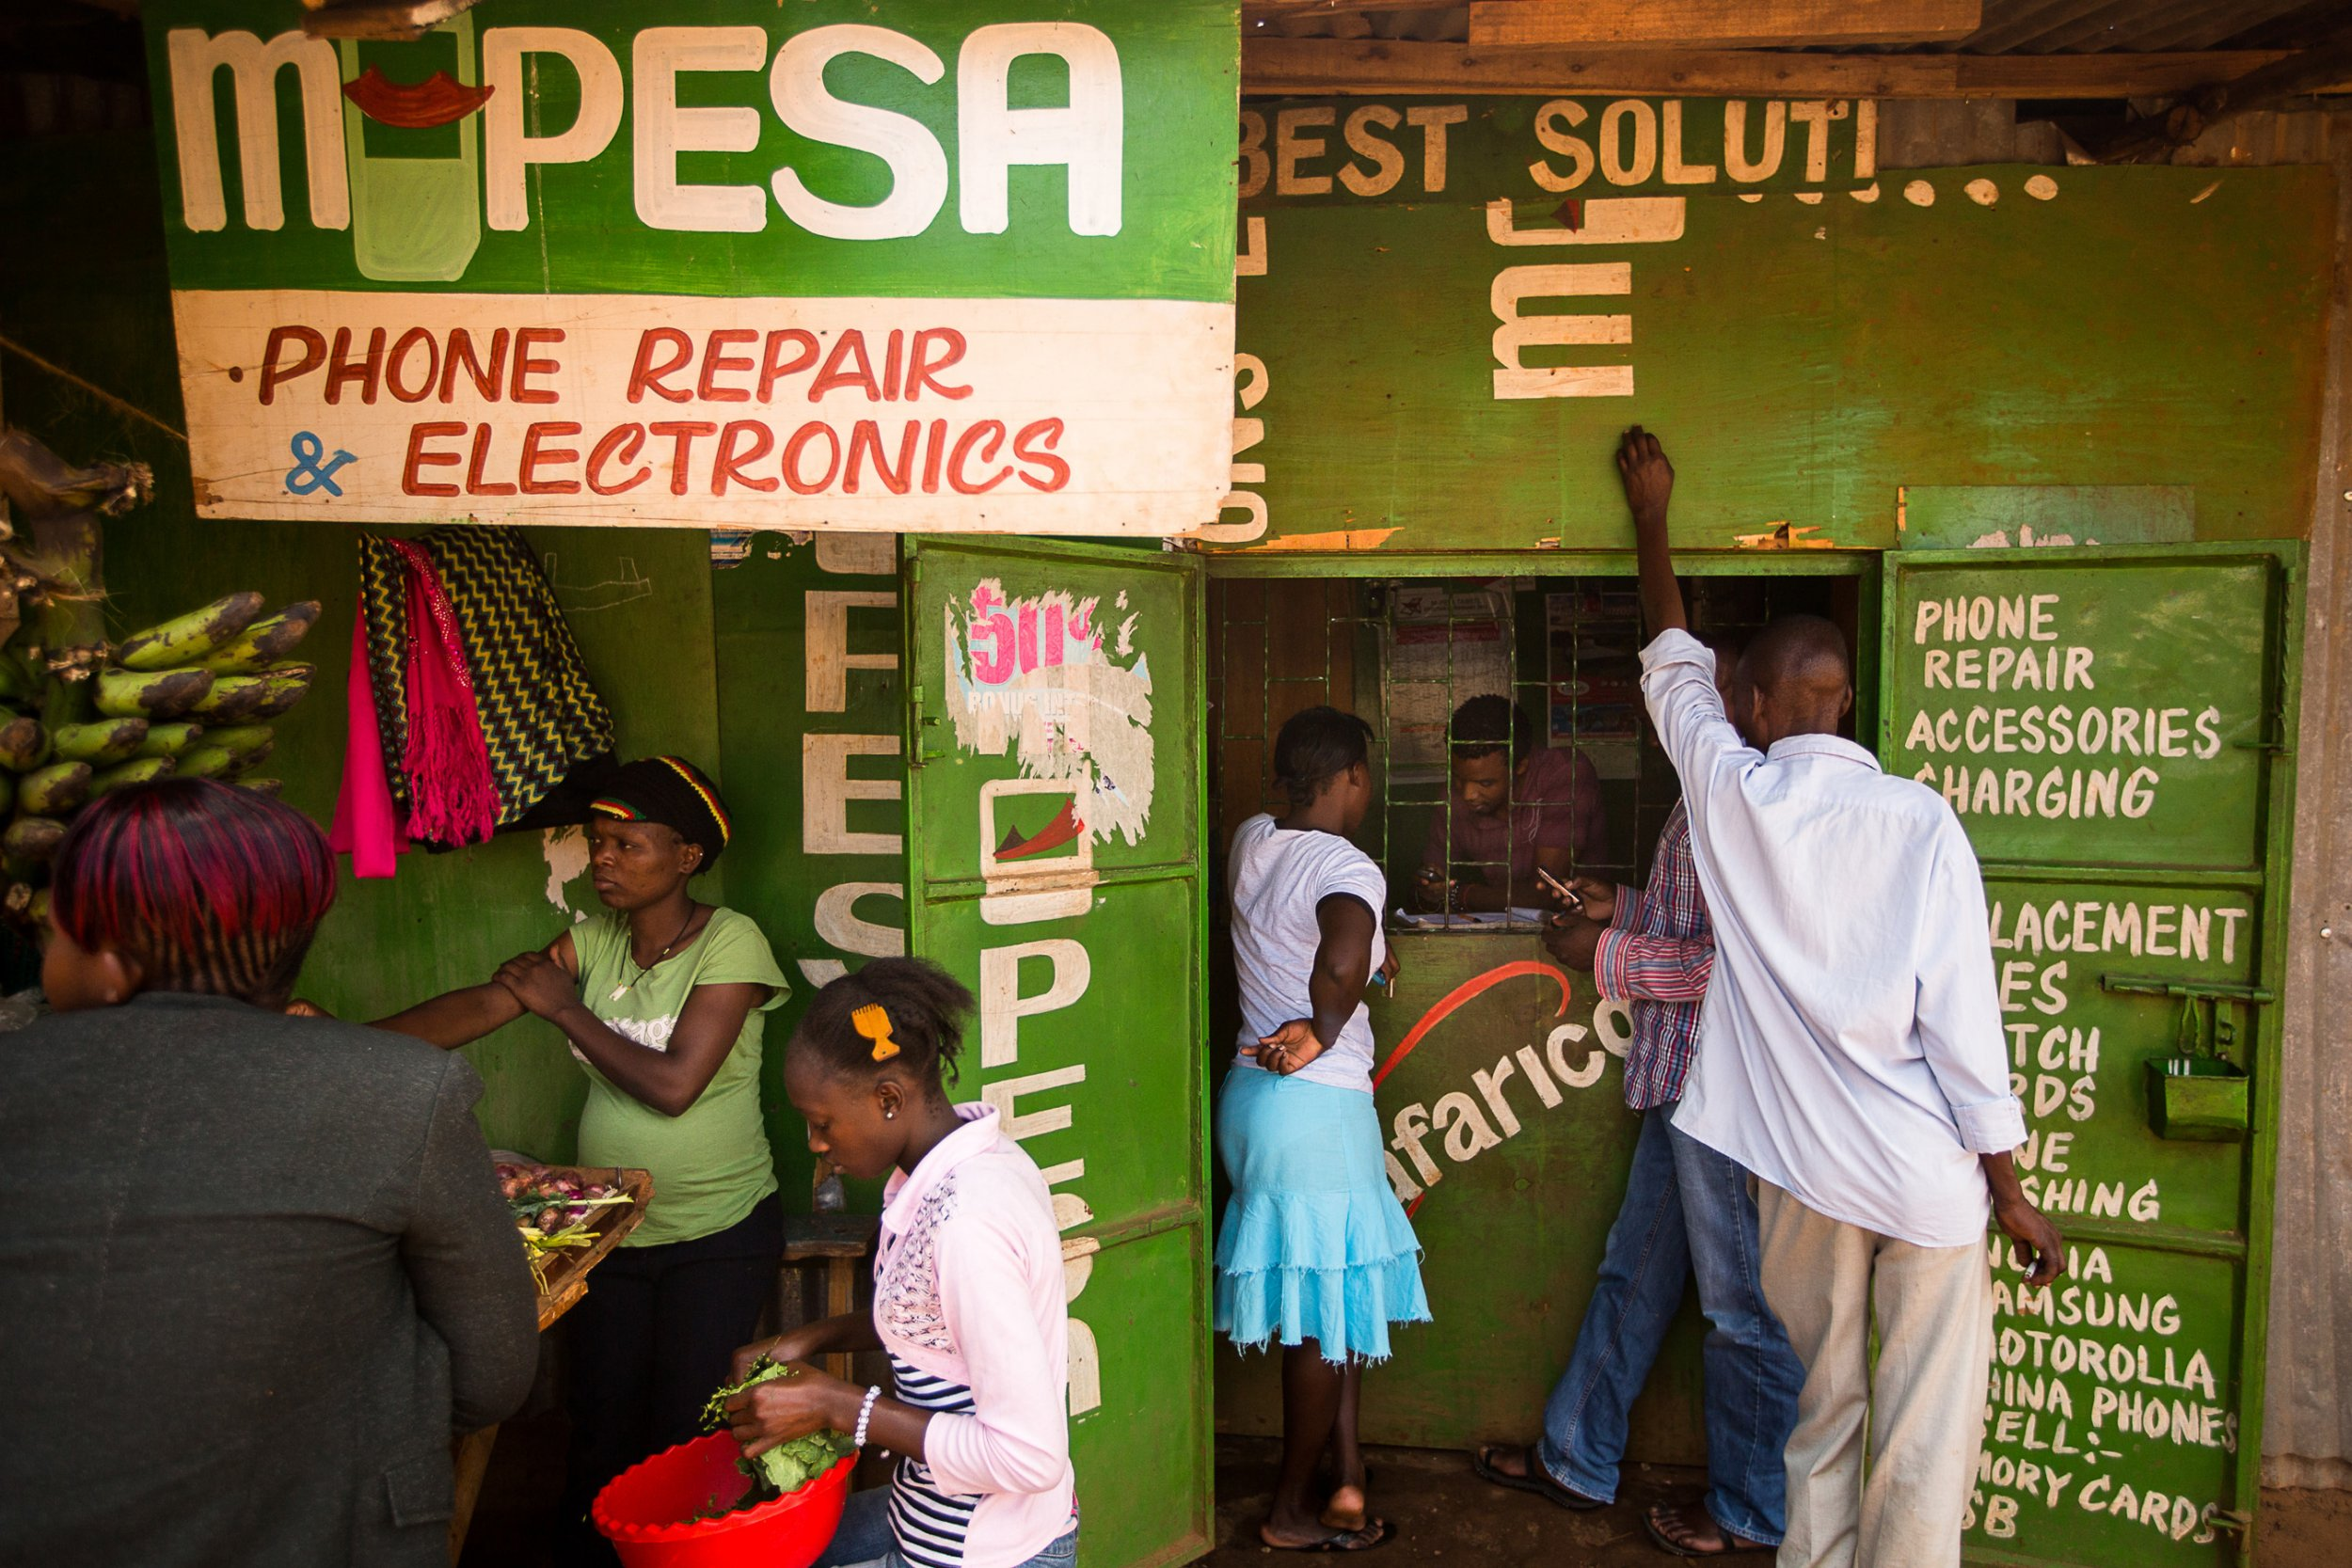 mobile banking in kenya Teaming with nowsecure, the mobile threat landscape for customer-facing  mobile banking apps was analyzed given the prevalence of security  vulnerabilities.